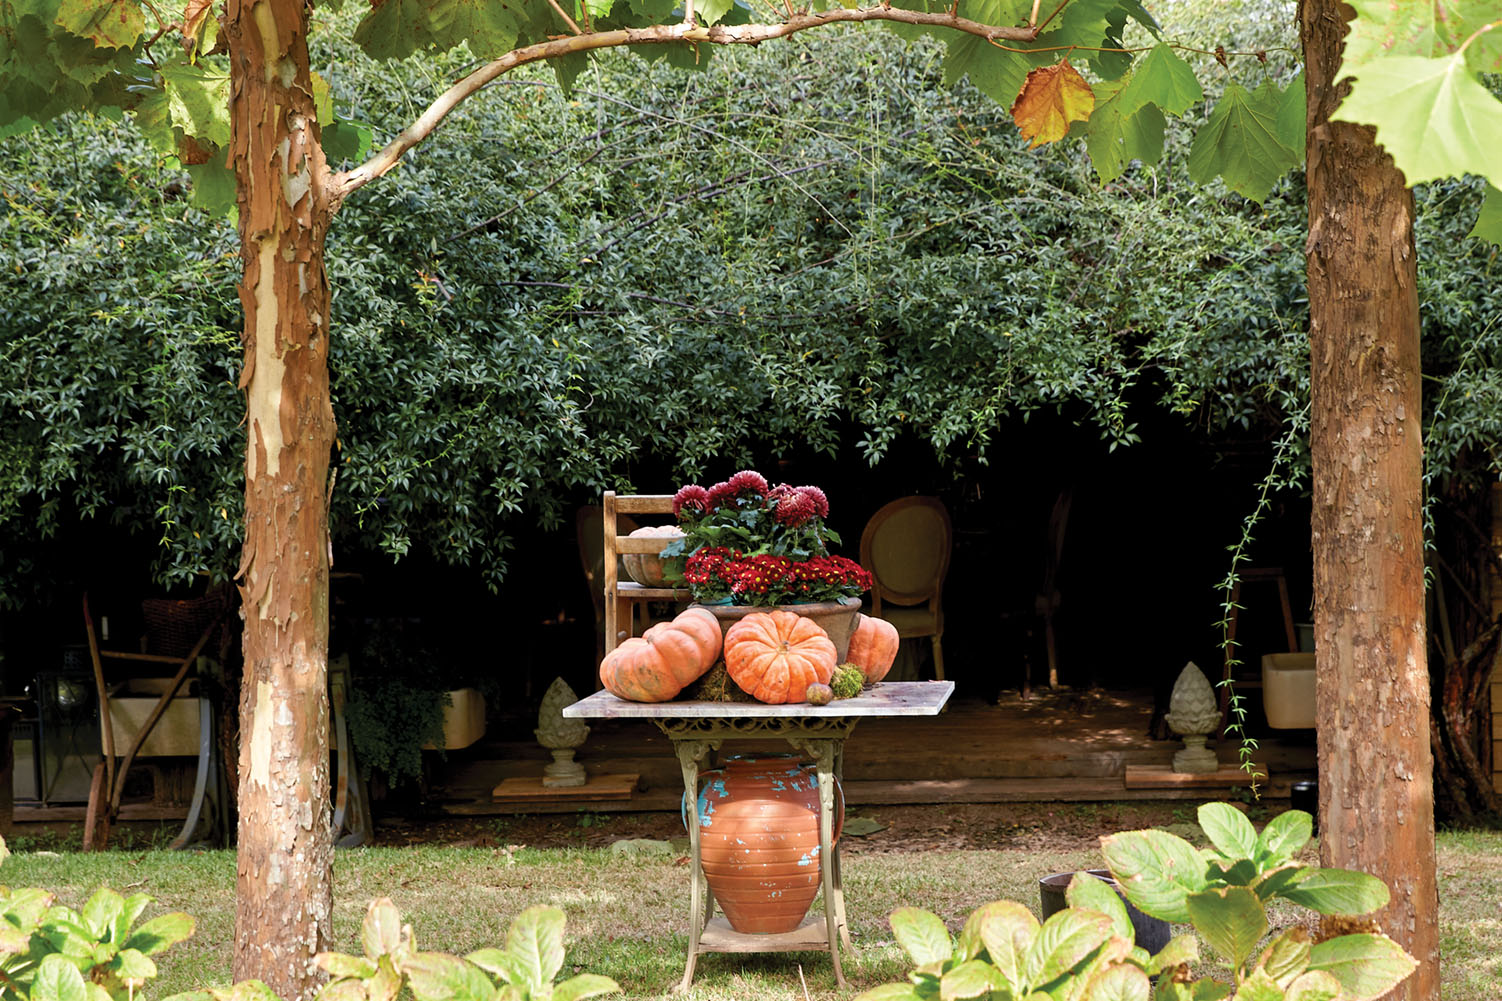 autumn display of pumpkins and flowers